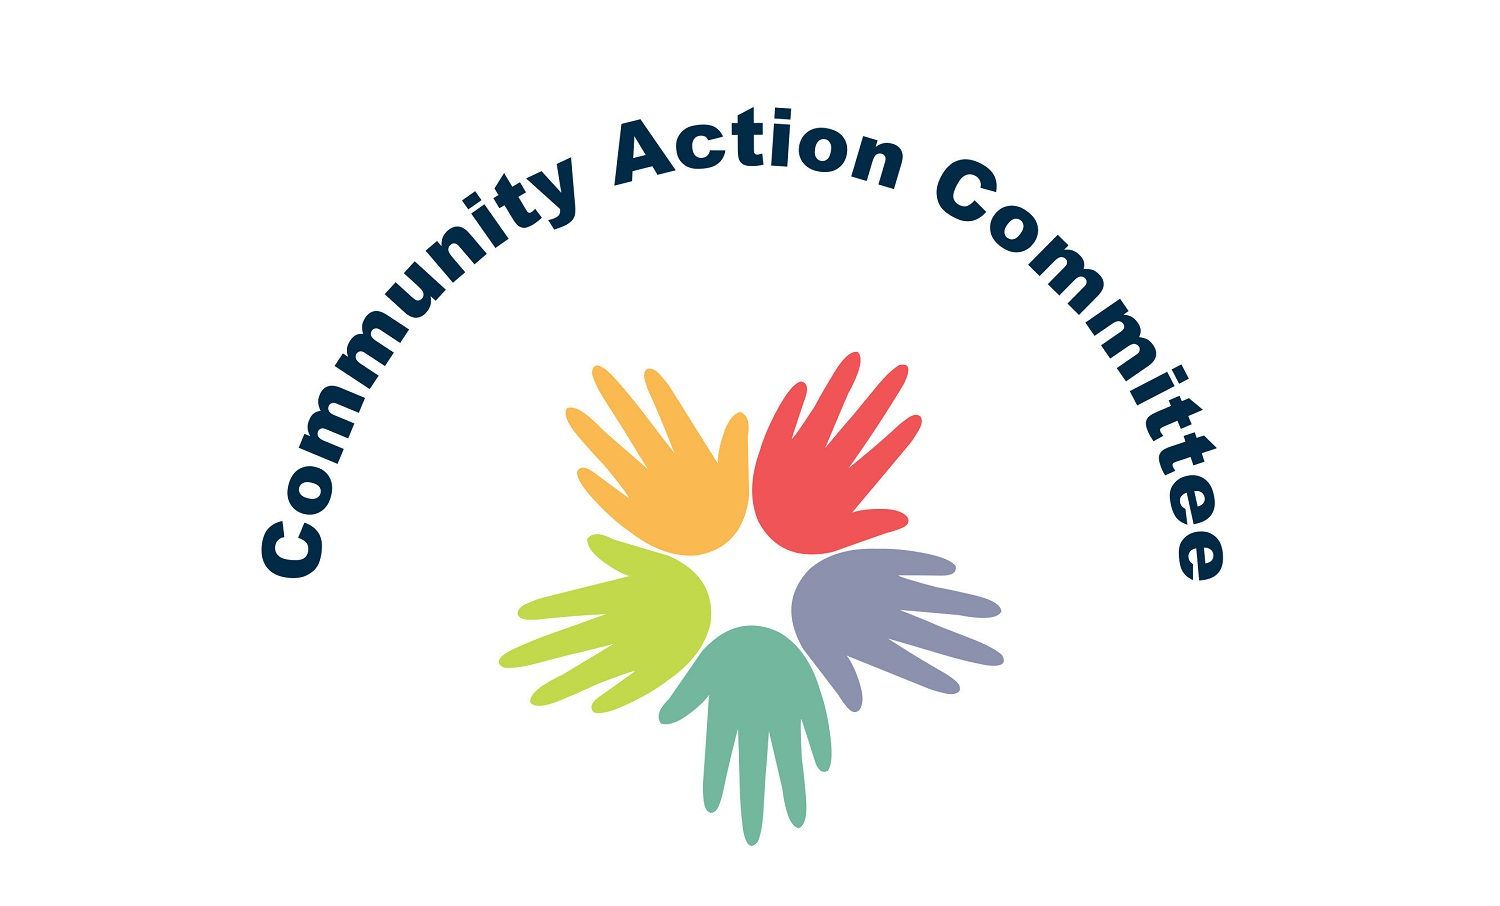 Community Action Committee logo